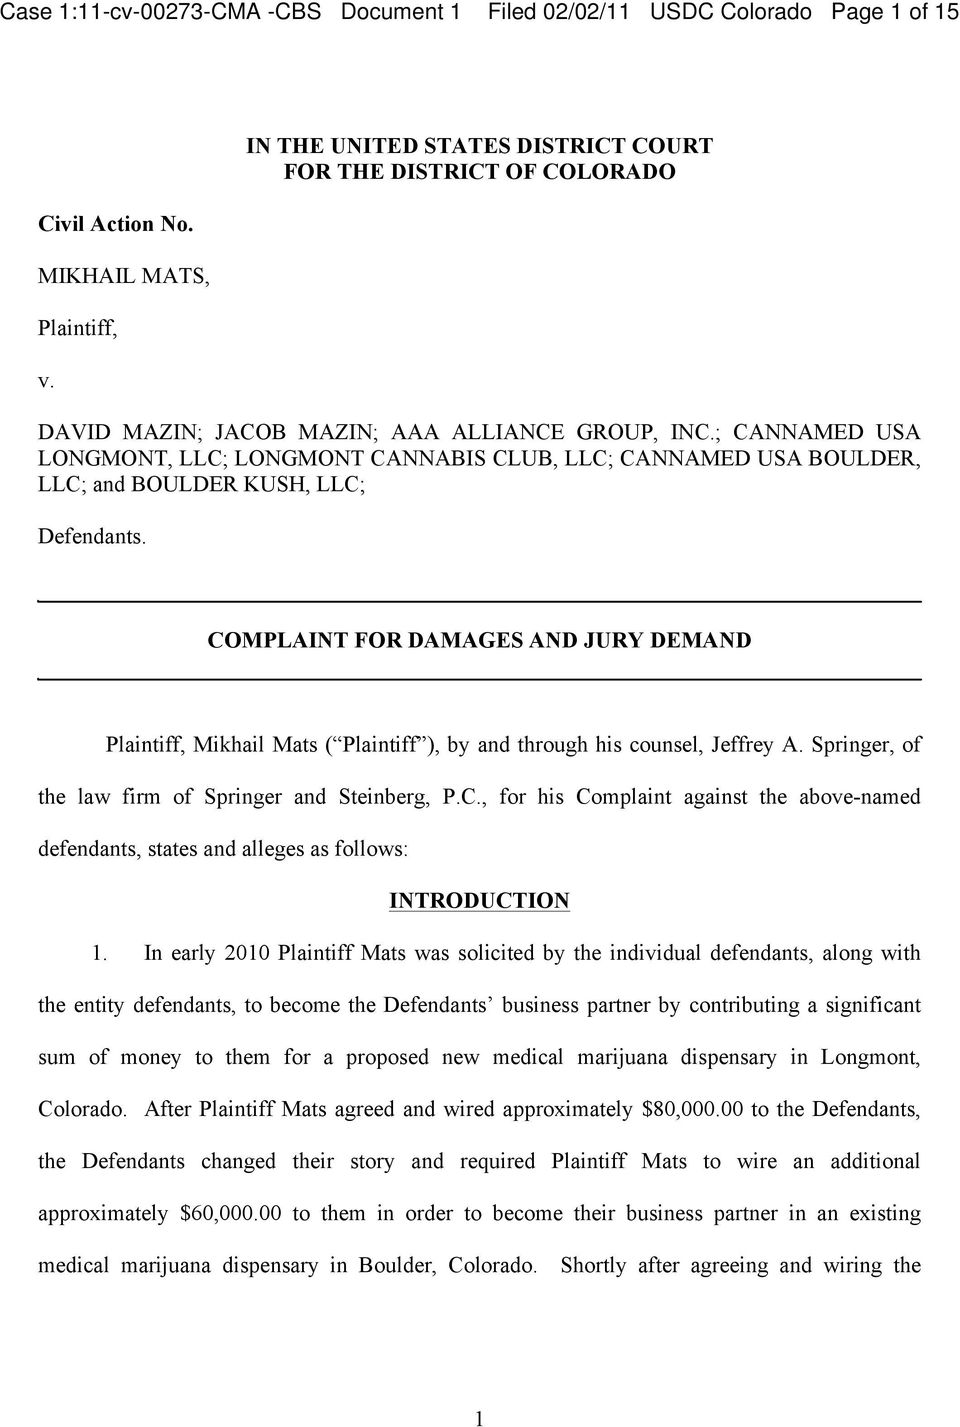 COMPLAINT FOR DAMAGES AND JURY DEMAND Plaintiff, Mikhail Mats ( Plaintiff ), by and through his counsel, Jeffrey A. Springer, of the law firm of Springer and Steinberg, P.C., for his Complaint against the above-named defendants, states and alleges as follows: INTRODUCTION 1.